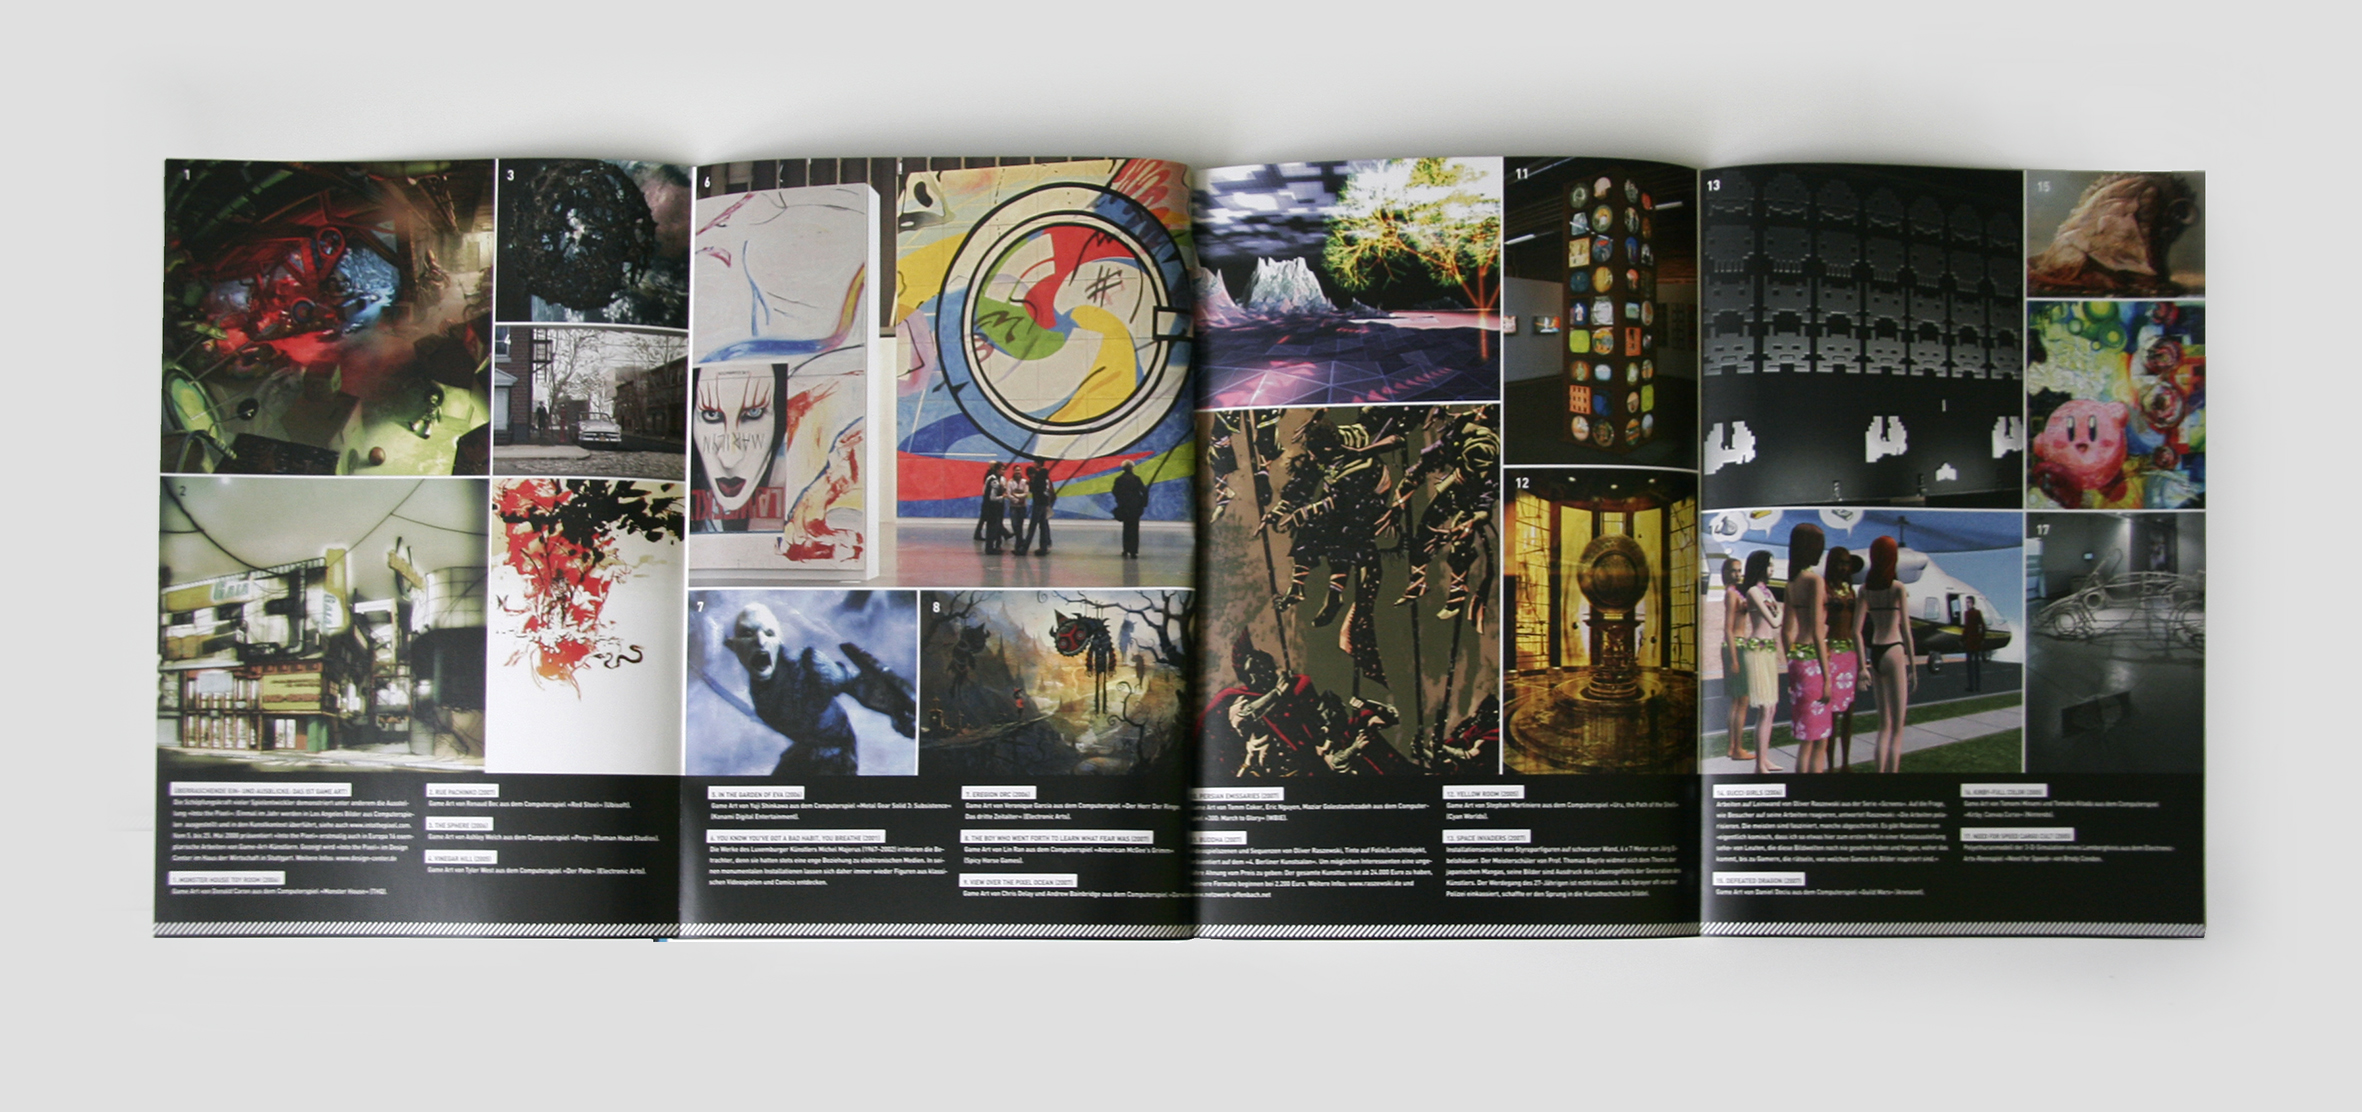 Electronic Arts magazine